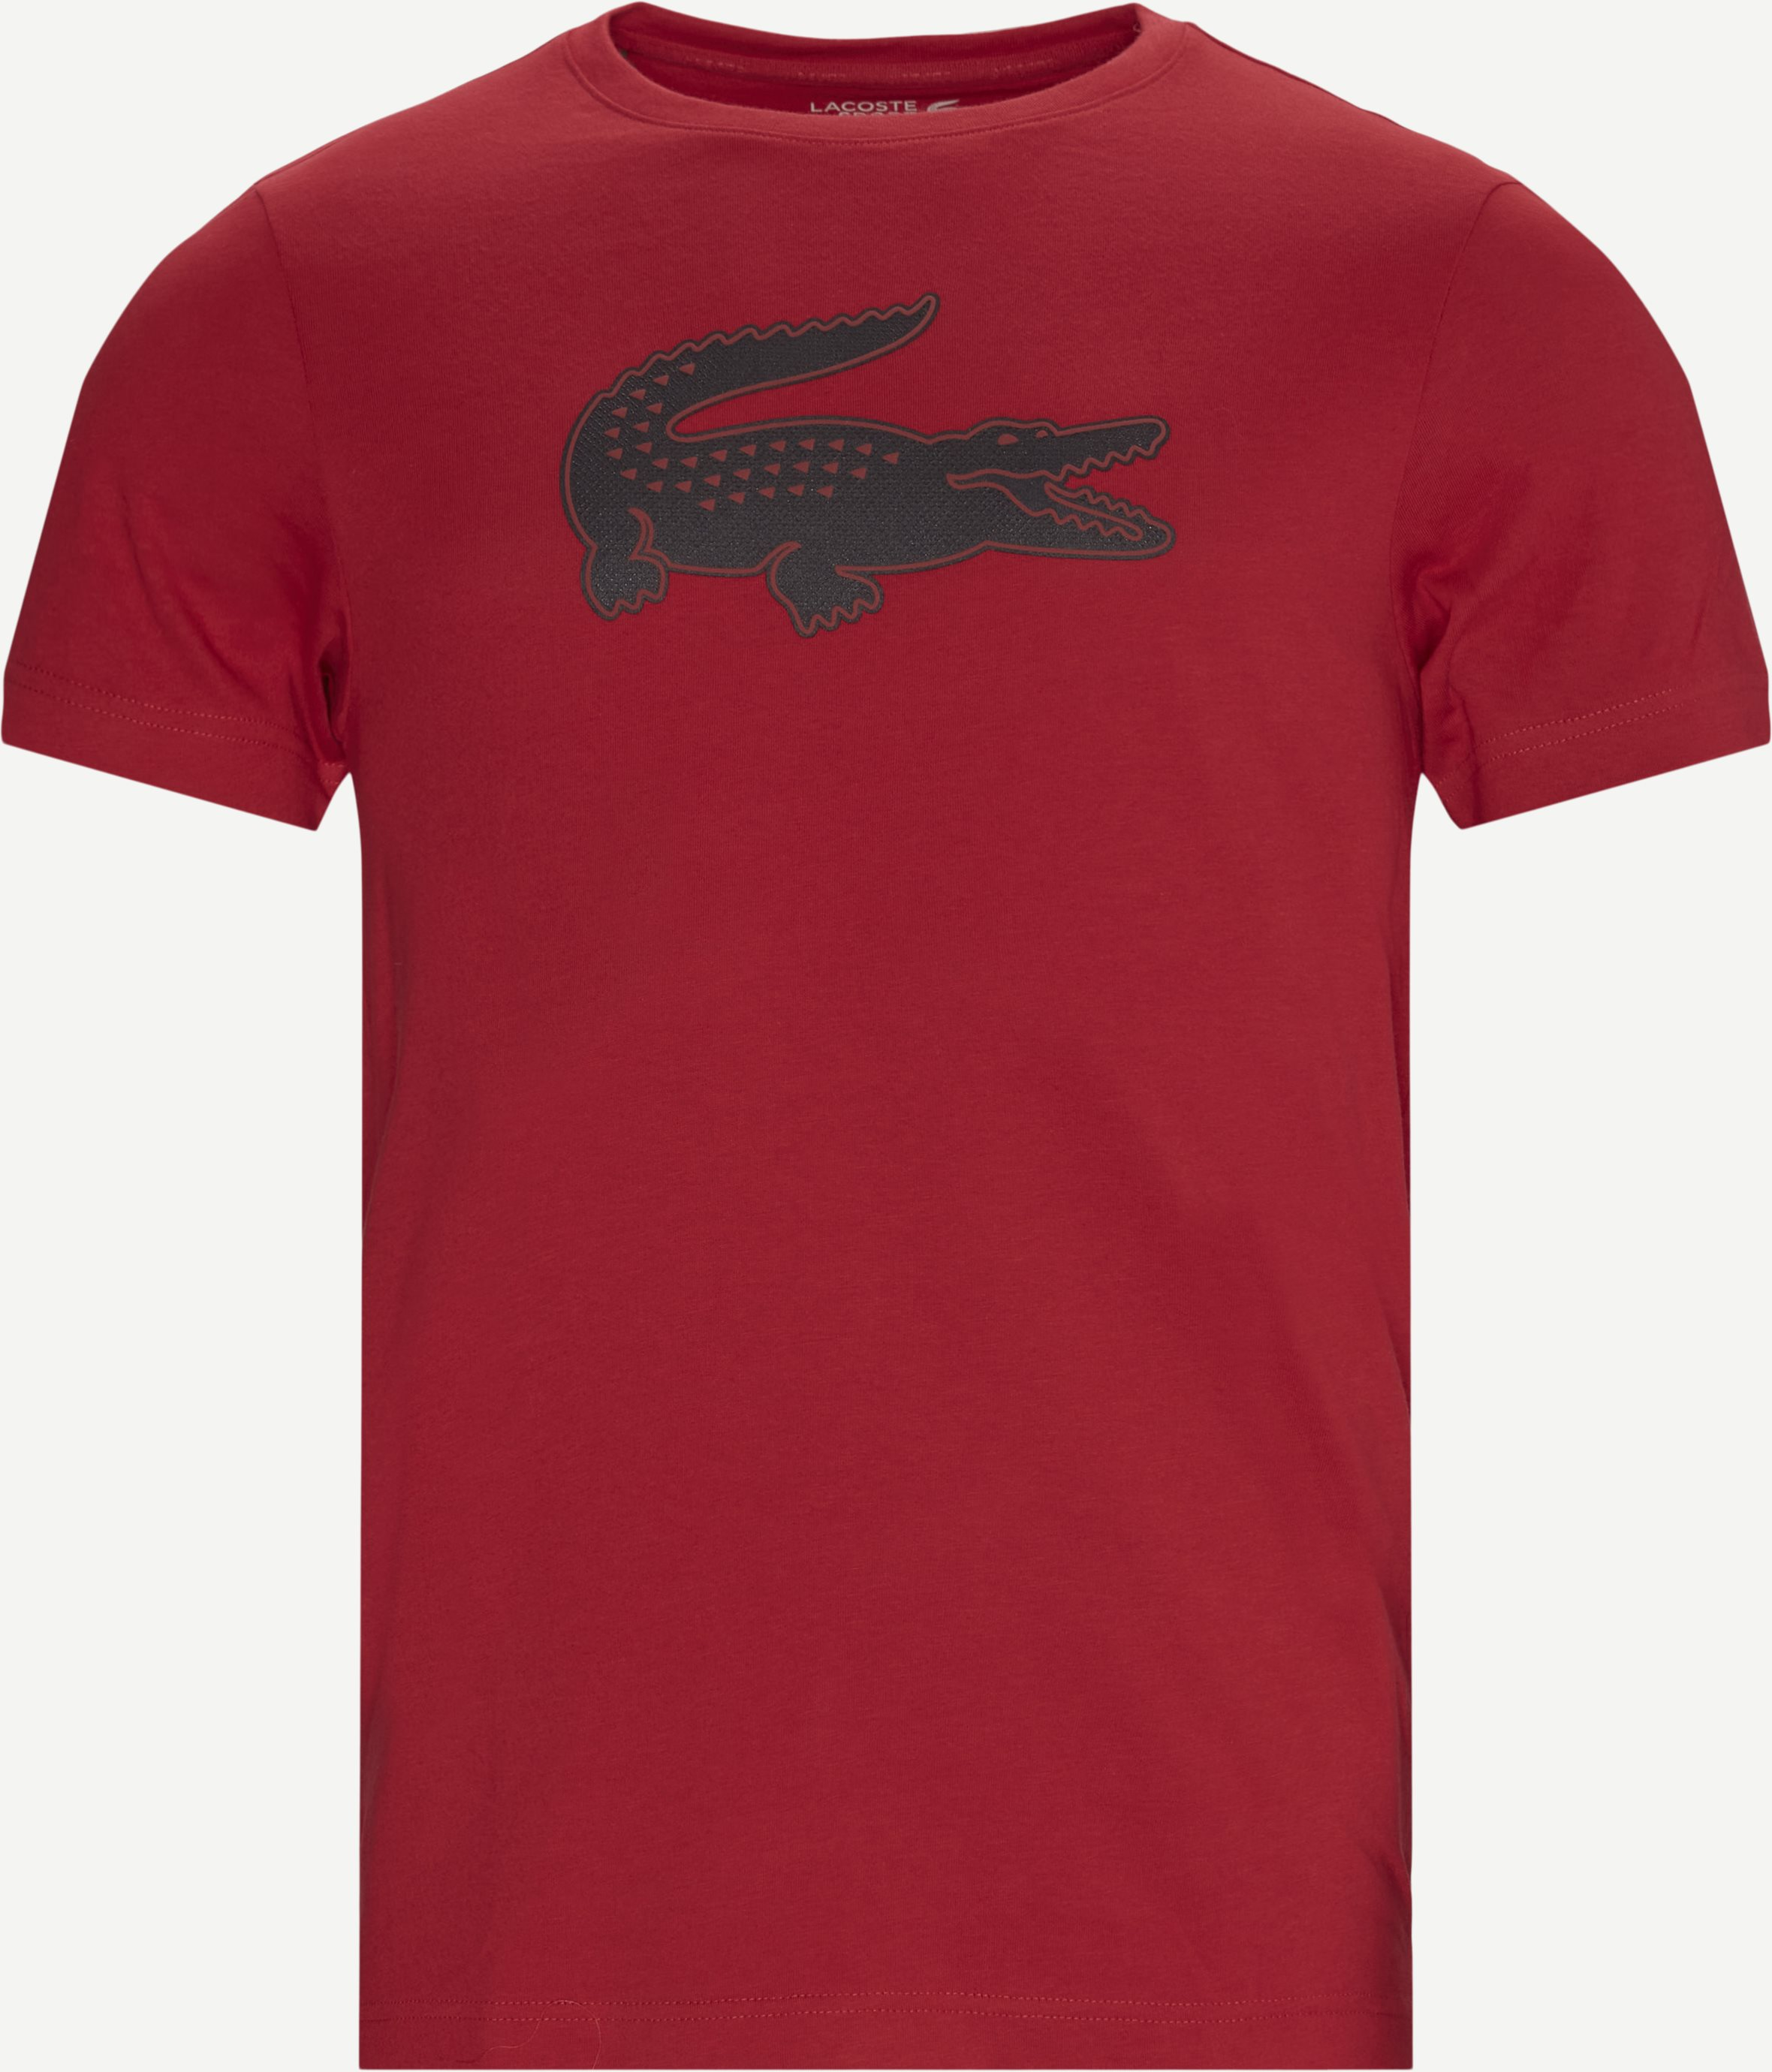 3D Print Crocodile Breathable Jersey T-shirt - T-shirts - Regular - Rød